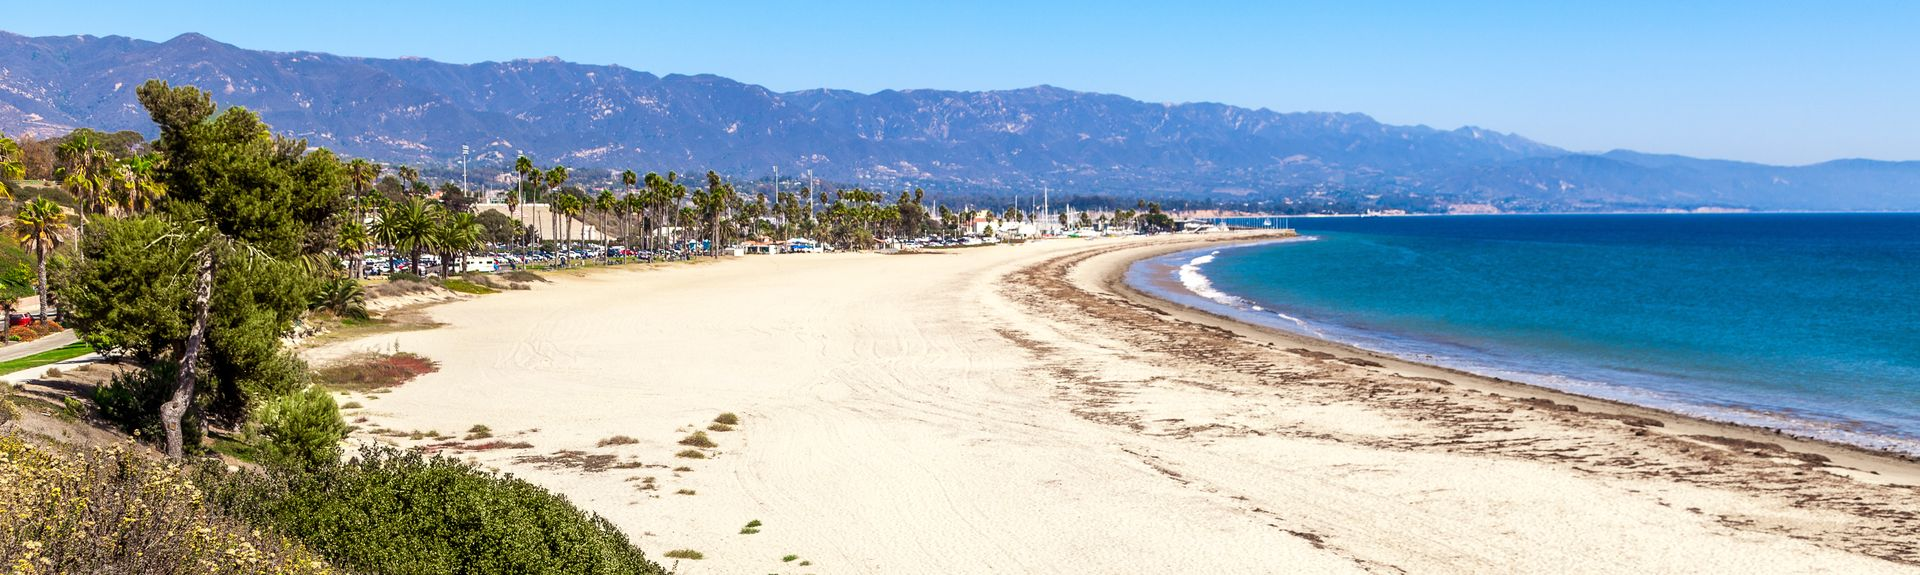 East Beach, Santa Barbara, CA, USA